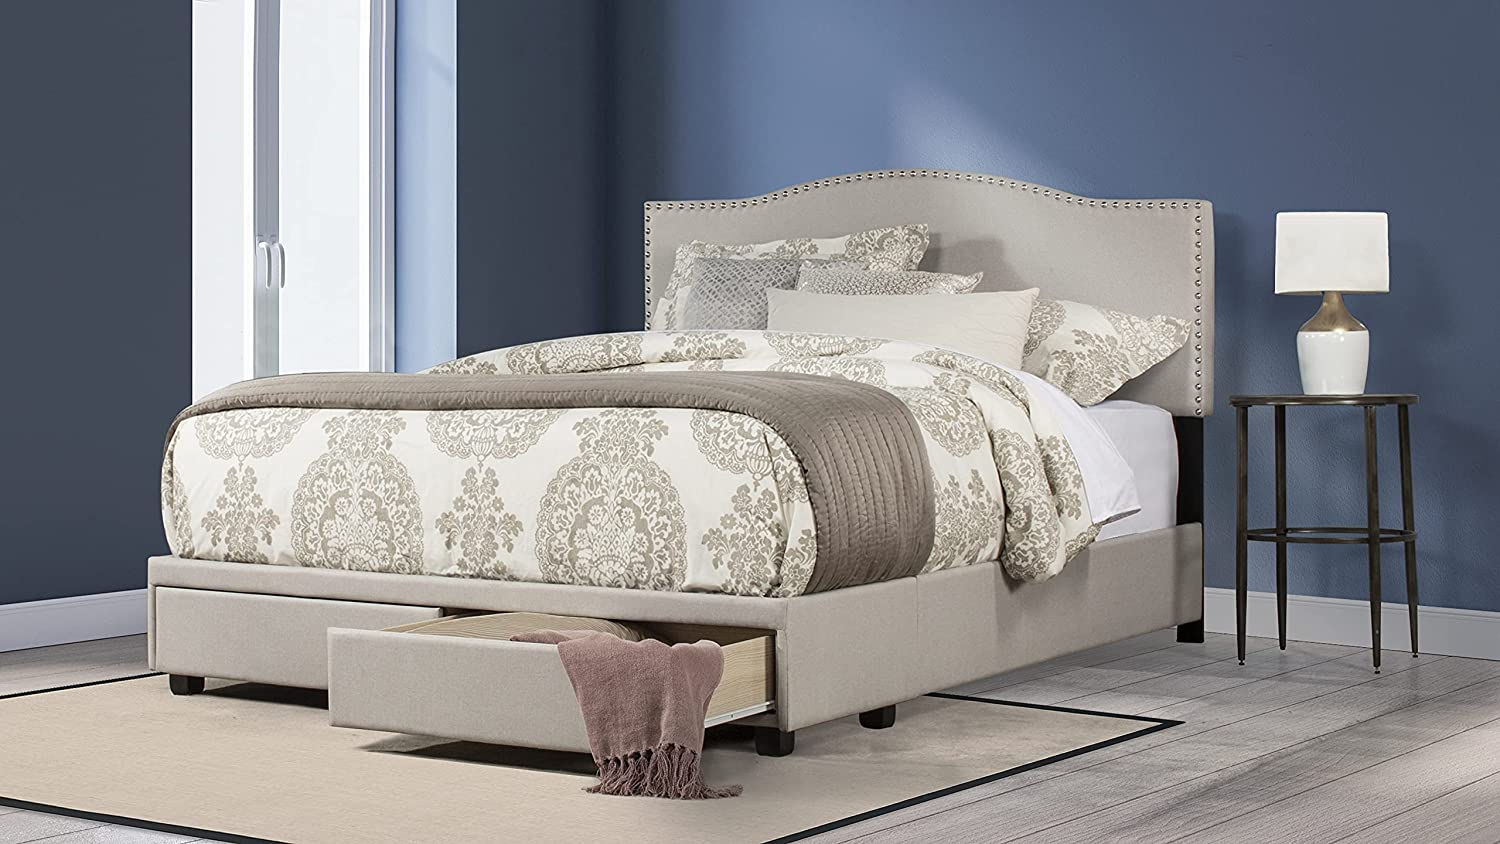 Free Shipping Cheap Bargain Gift Hillsdale Kiley Queen Upholstered Storage Max 86% OFF Bed Fog